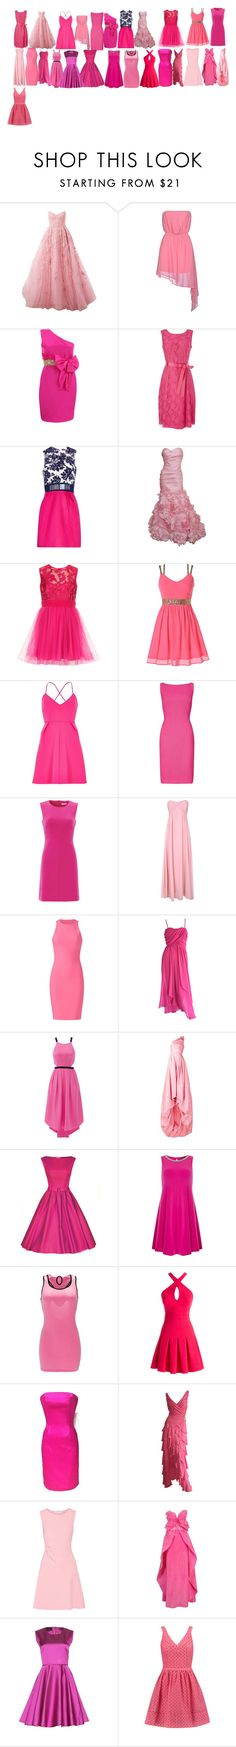 """Hannah's pink dresses"" by abuffaloe on Polyvore featuring Zuhair Murad, Noshua, Notte by Marchesa, Precis Petite, Mary Katrantzou, Monique Lhuillier, River Island, Adrianna Papell, Diane Von Furstenberg and Alice & You"